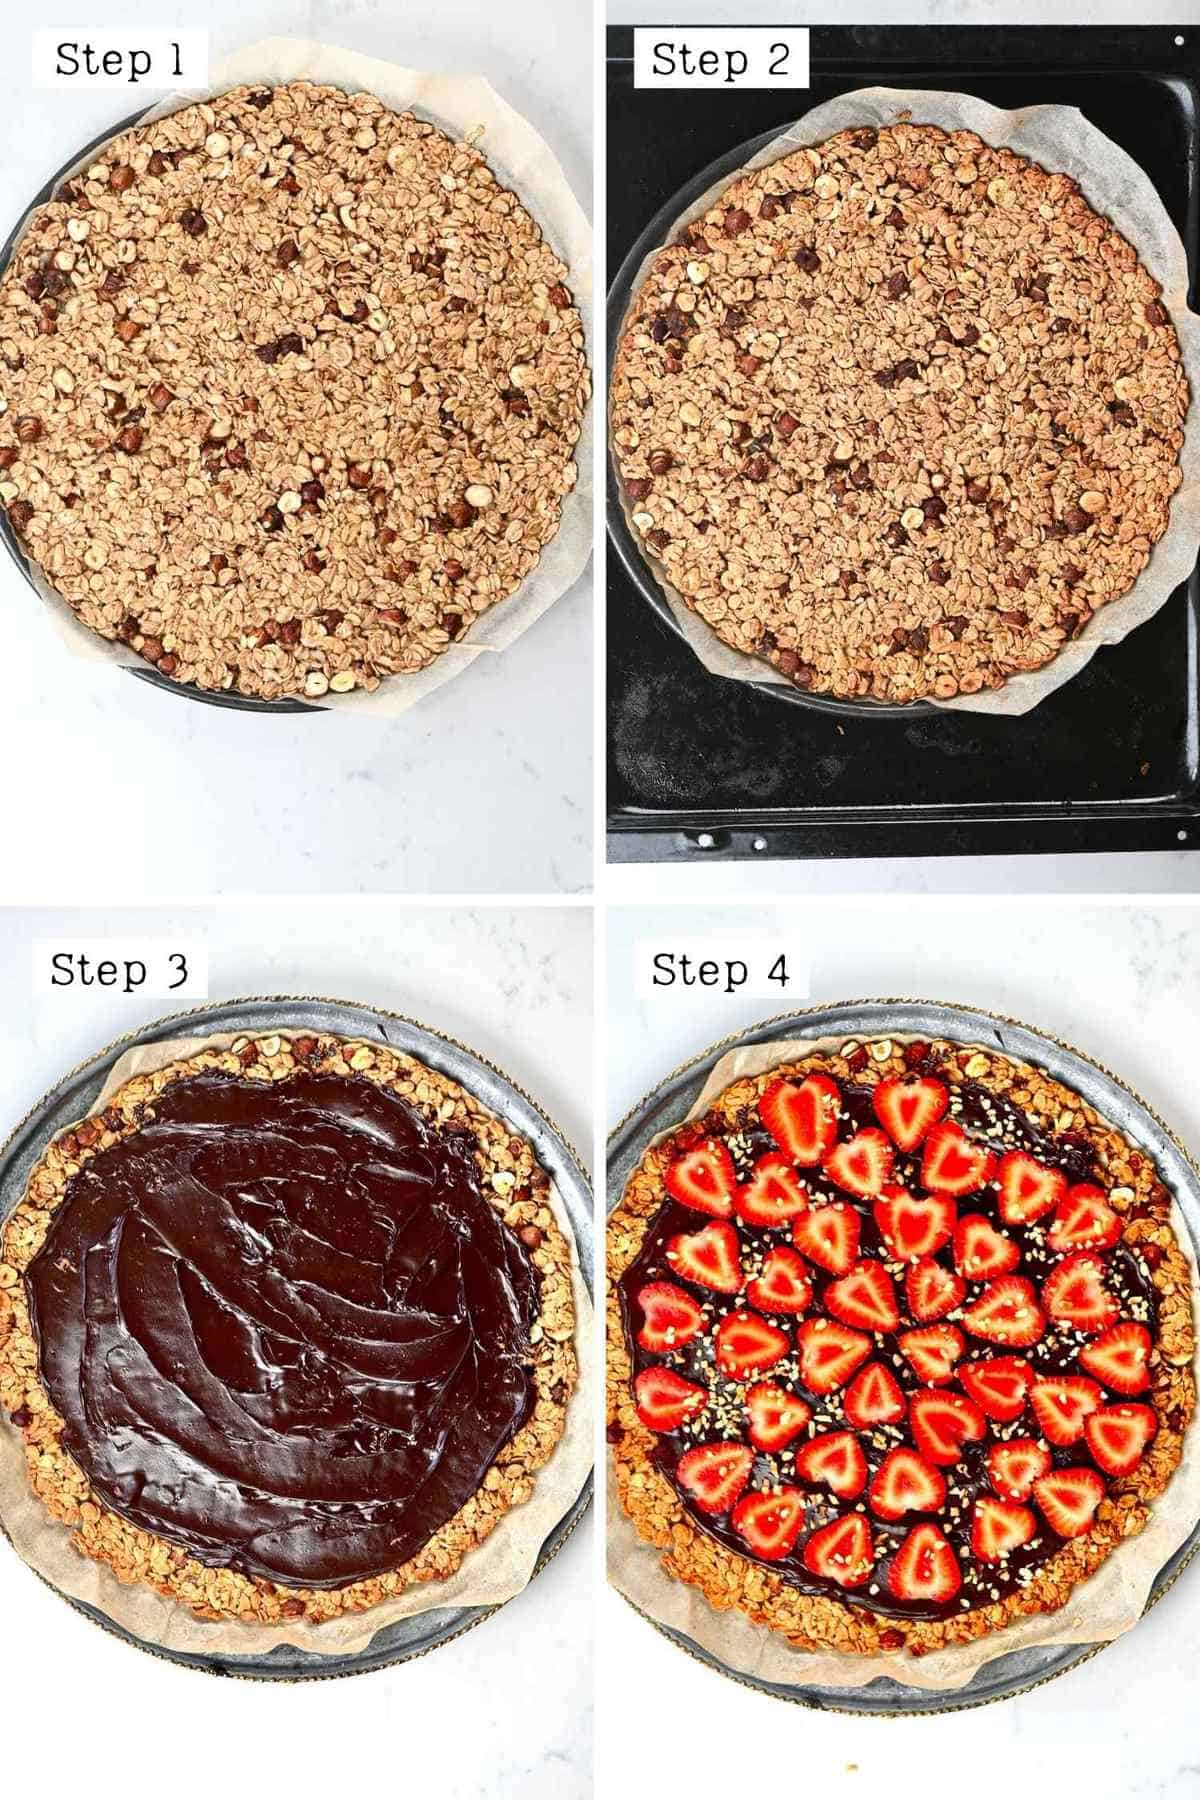 Assembling the nutella pizza